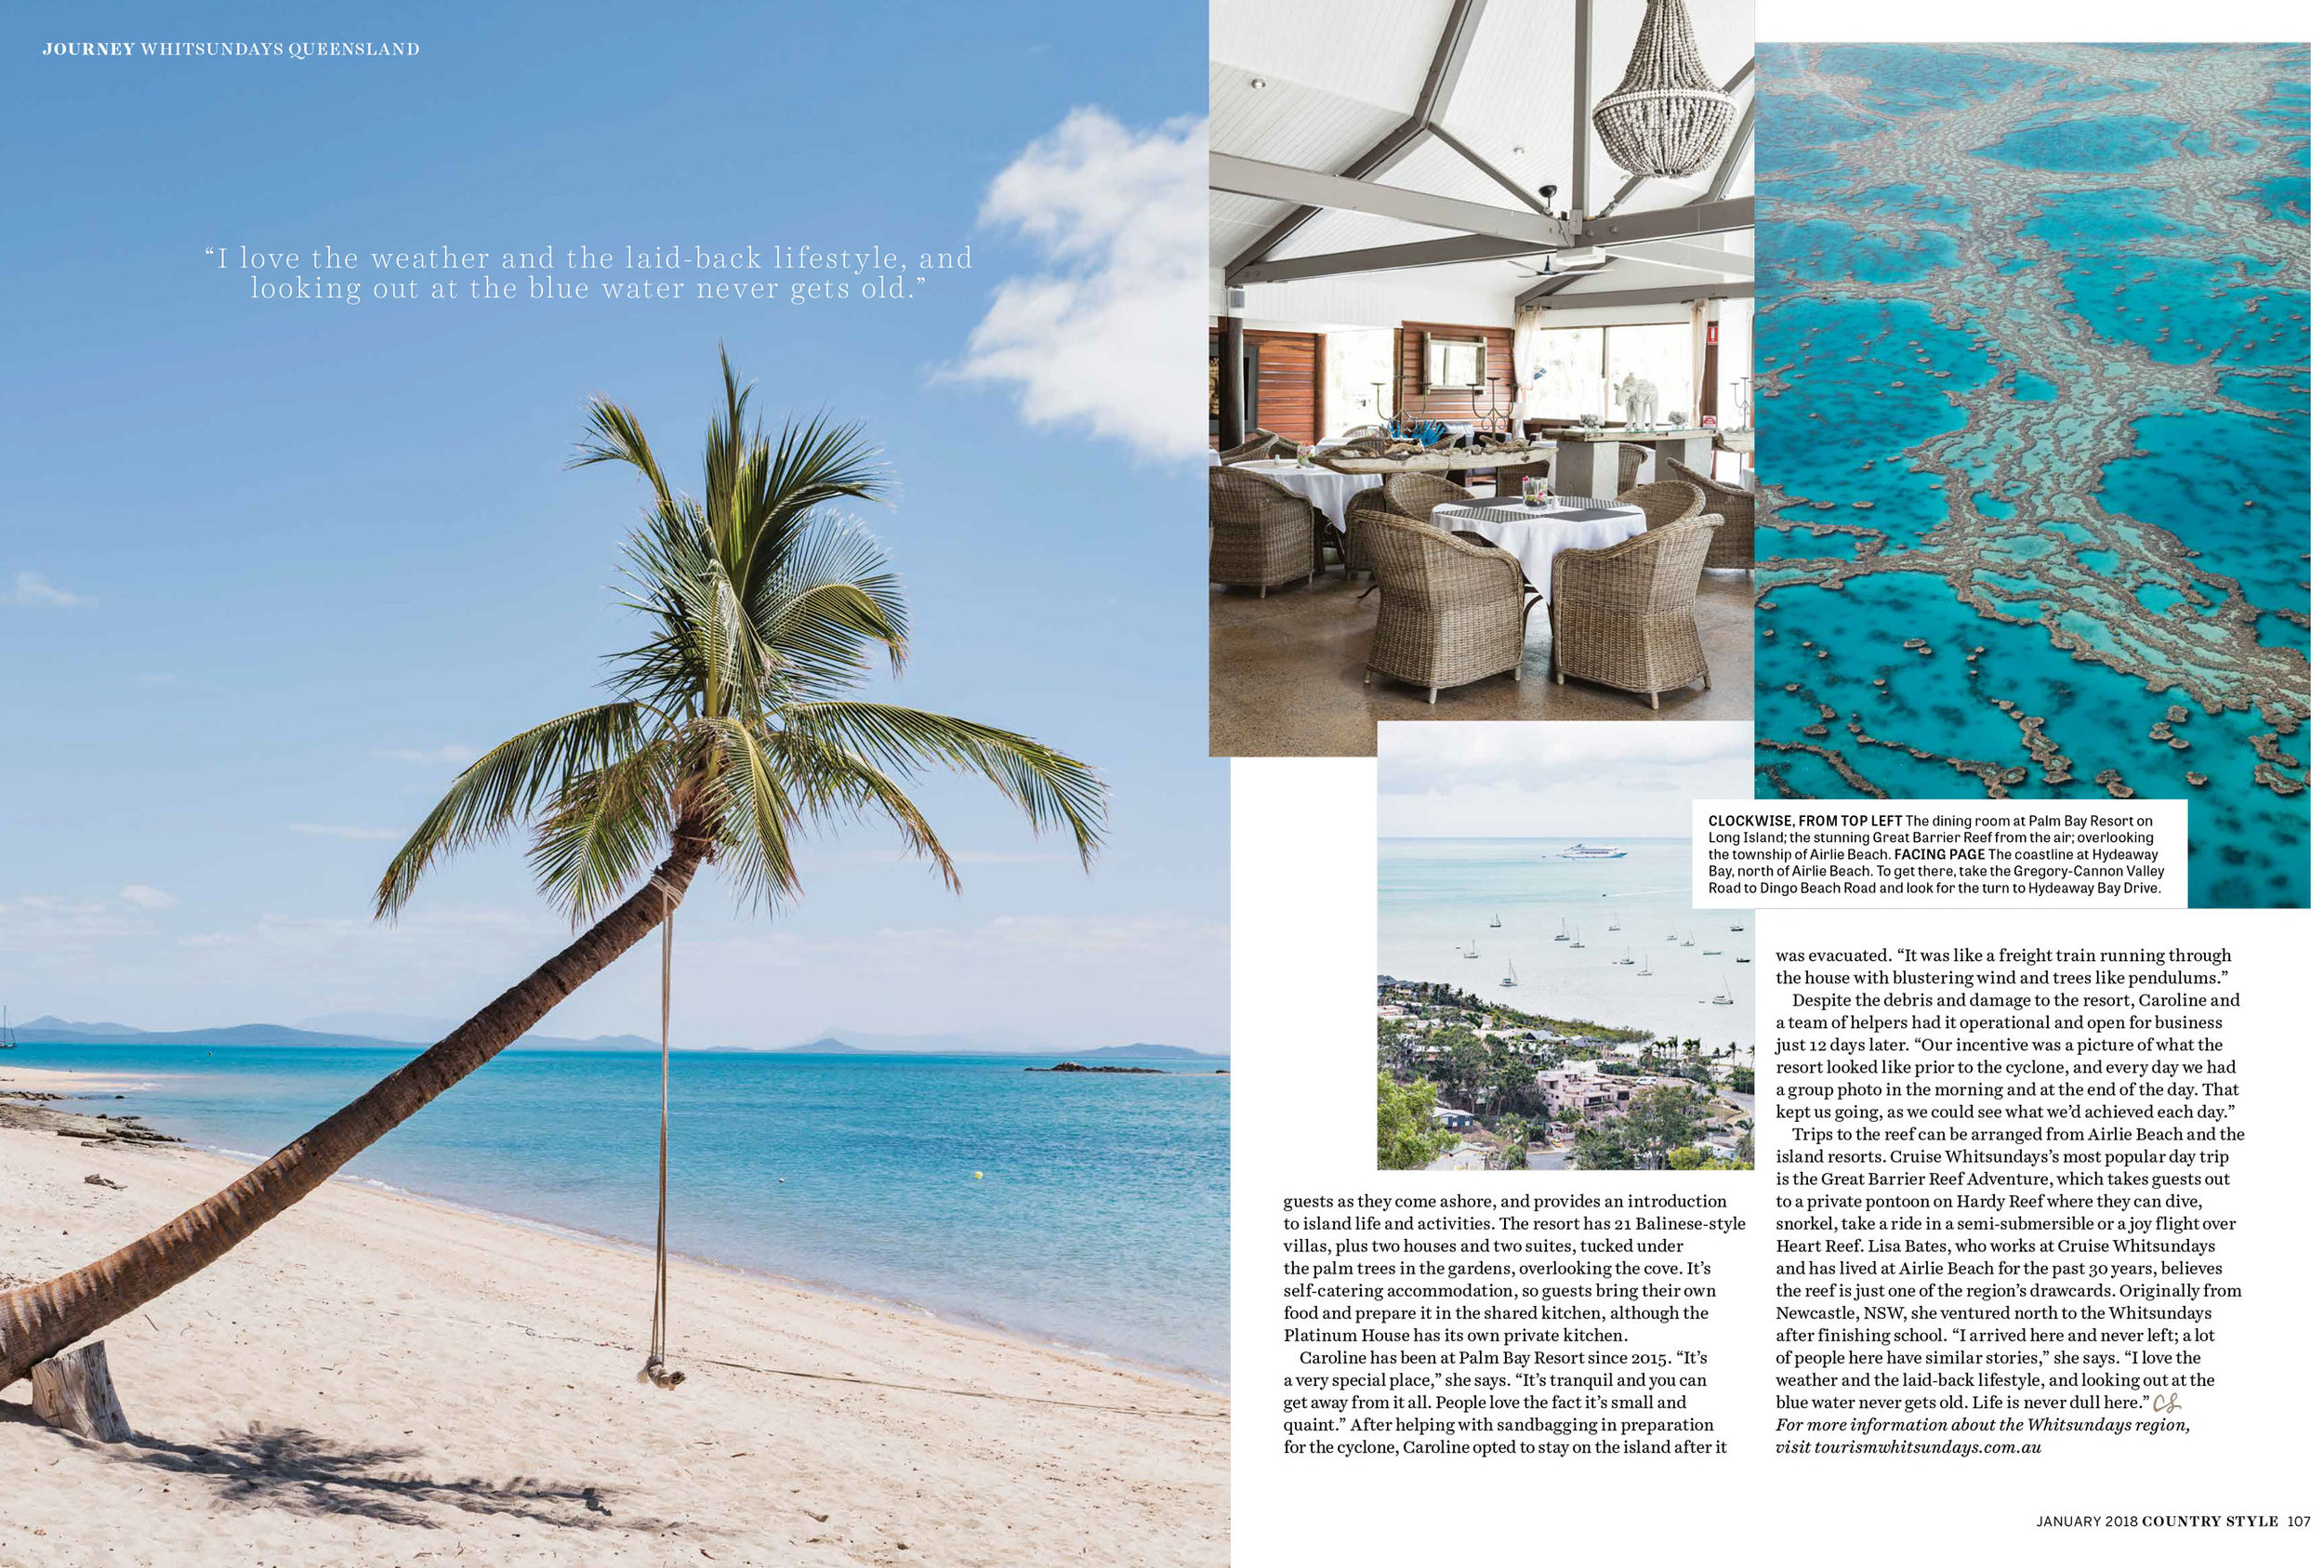 Australian+Country+Style+January+2018+Whitsundays+Queensland+Journey+by+Claire+Mactaggart+3